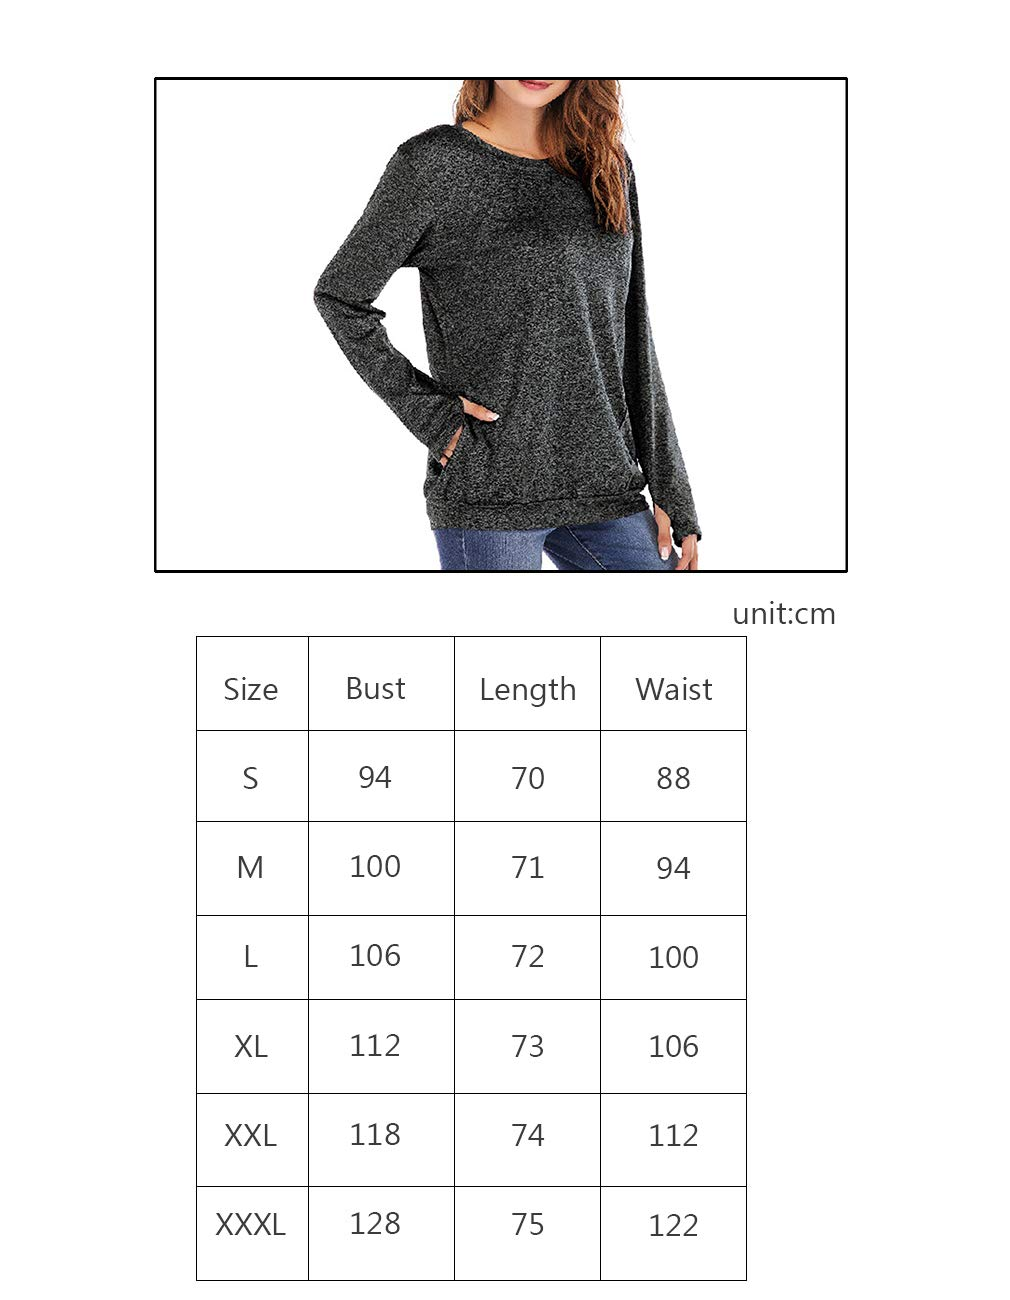 Defal Womens Long Sleeve Round Neck Quick-Dry Top T-Shirts Loose Gym Sports with Thumb Holes Pockets Fashion Tunic Blouse (Green,XXXL) by Defal (Image #4)